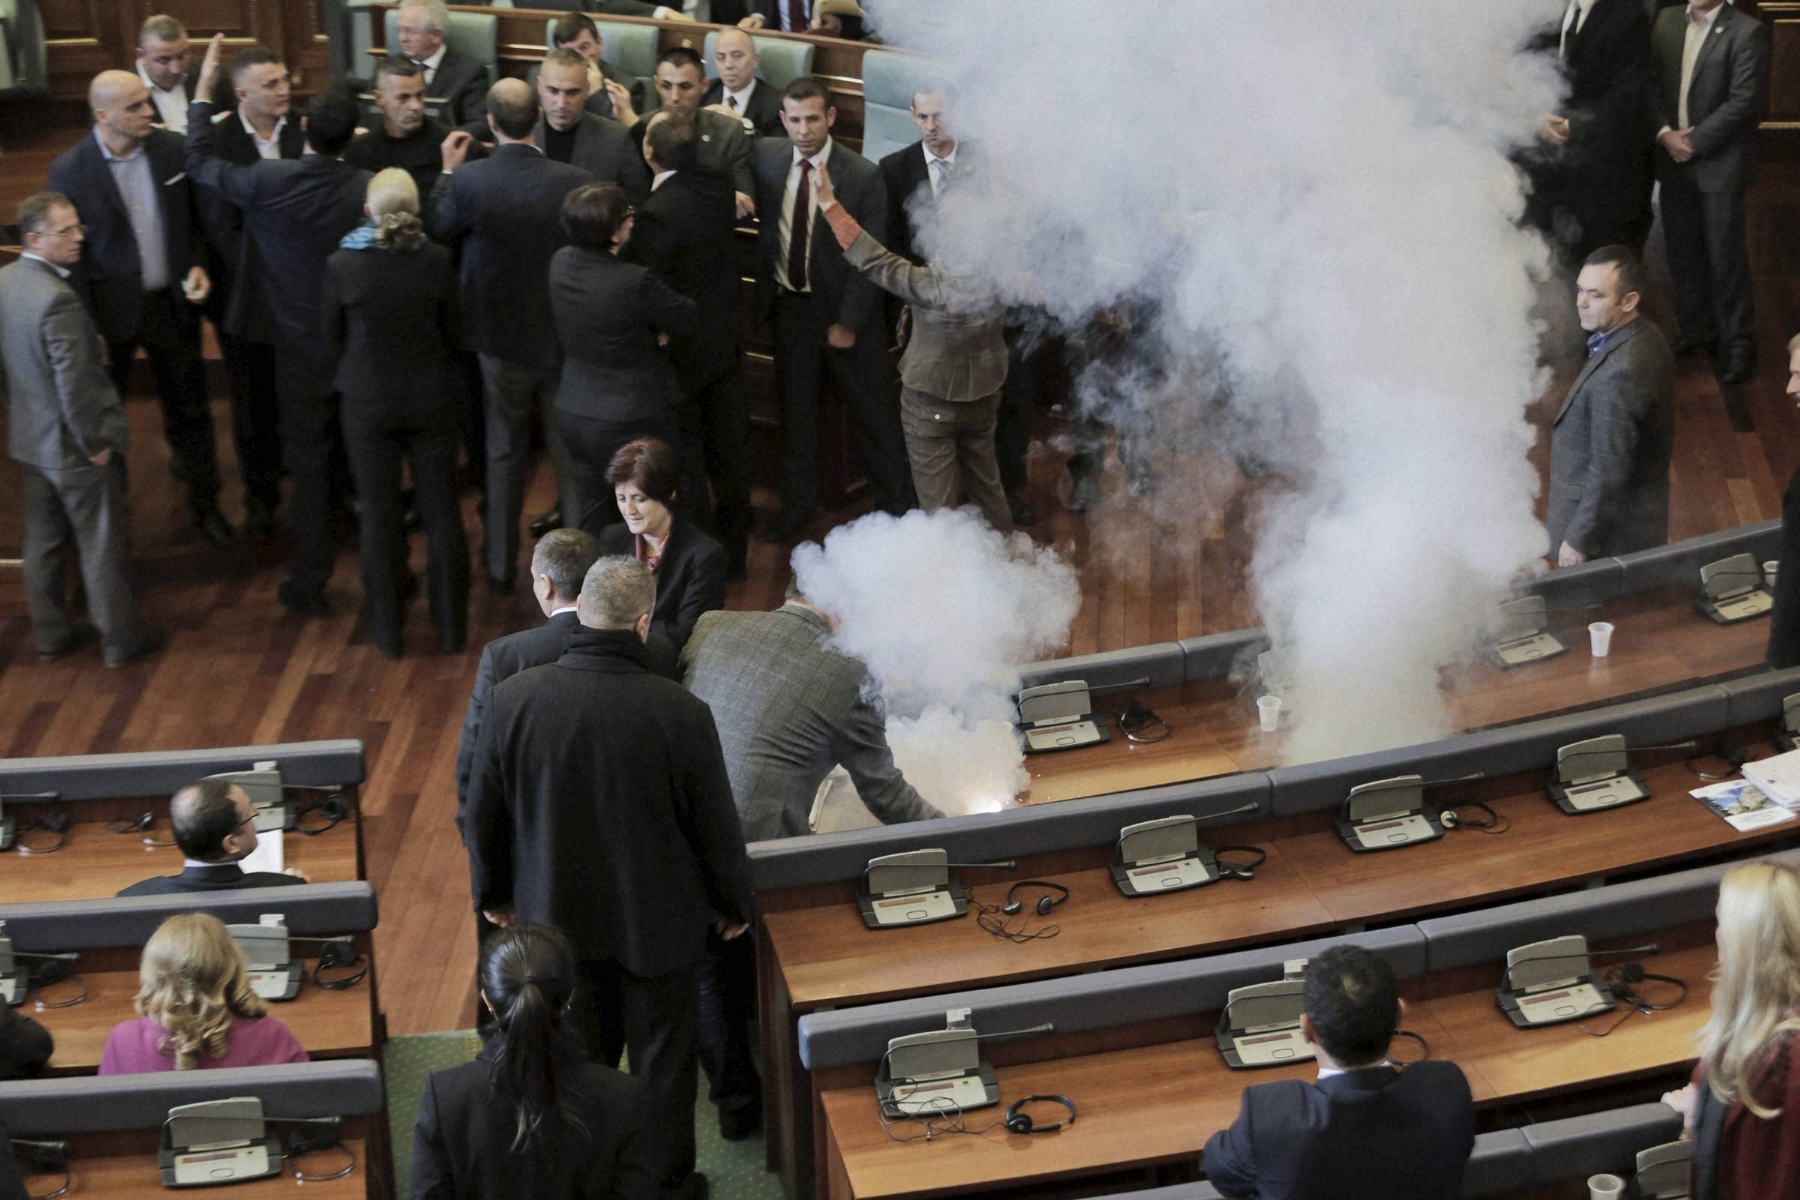 Oppn disrupts Kosovo Parlt with tear gas